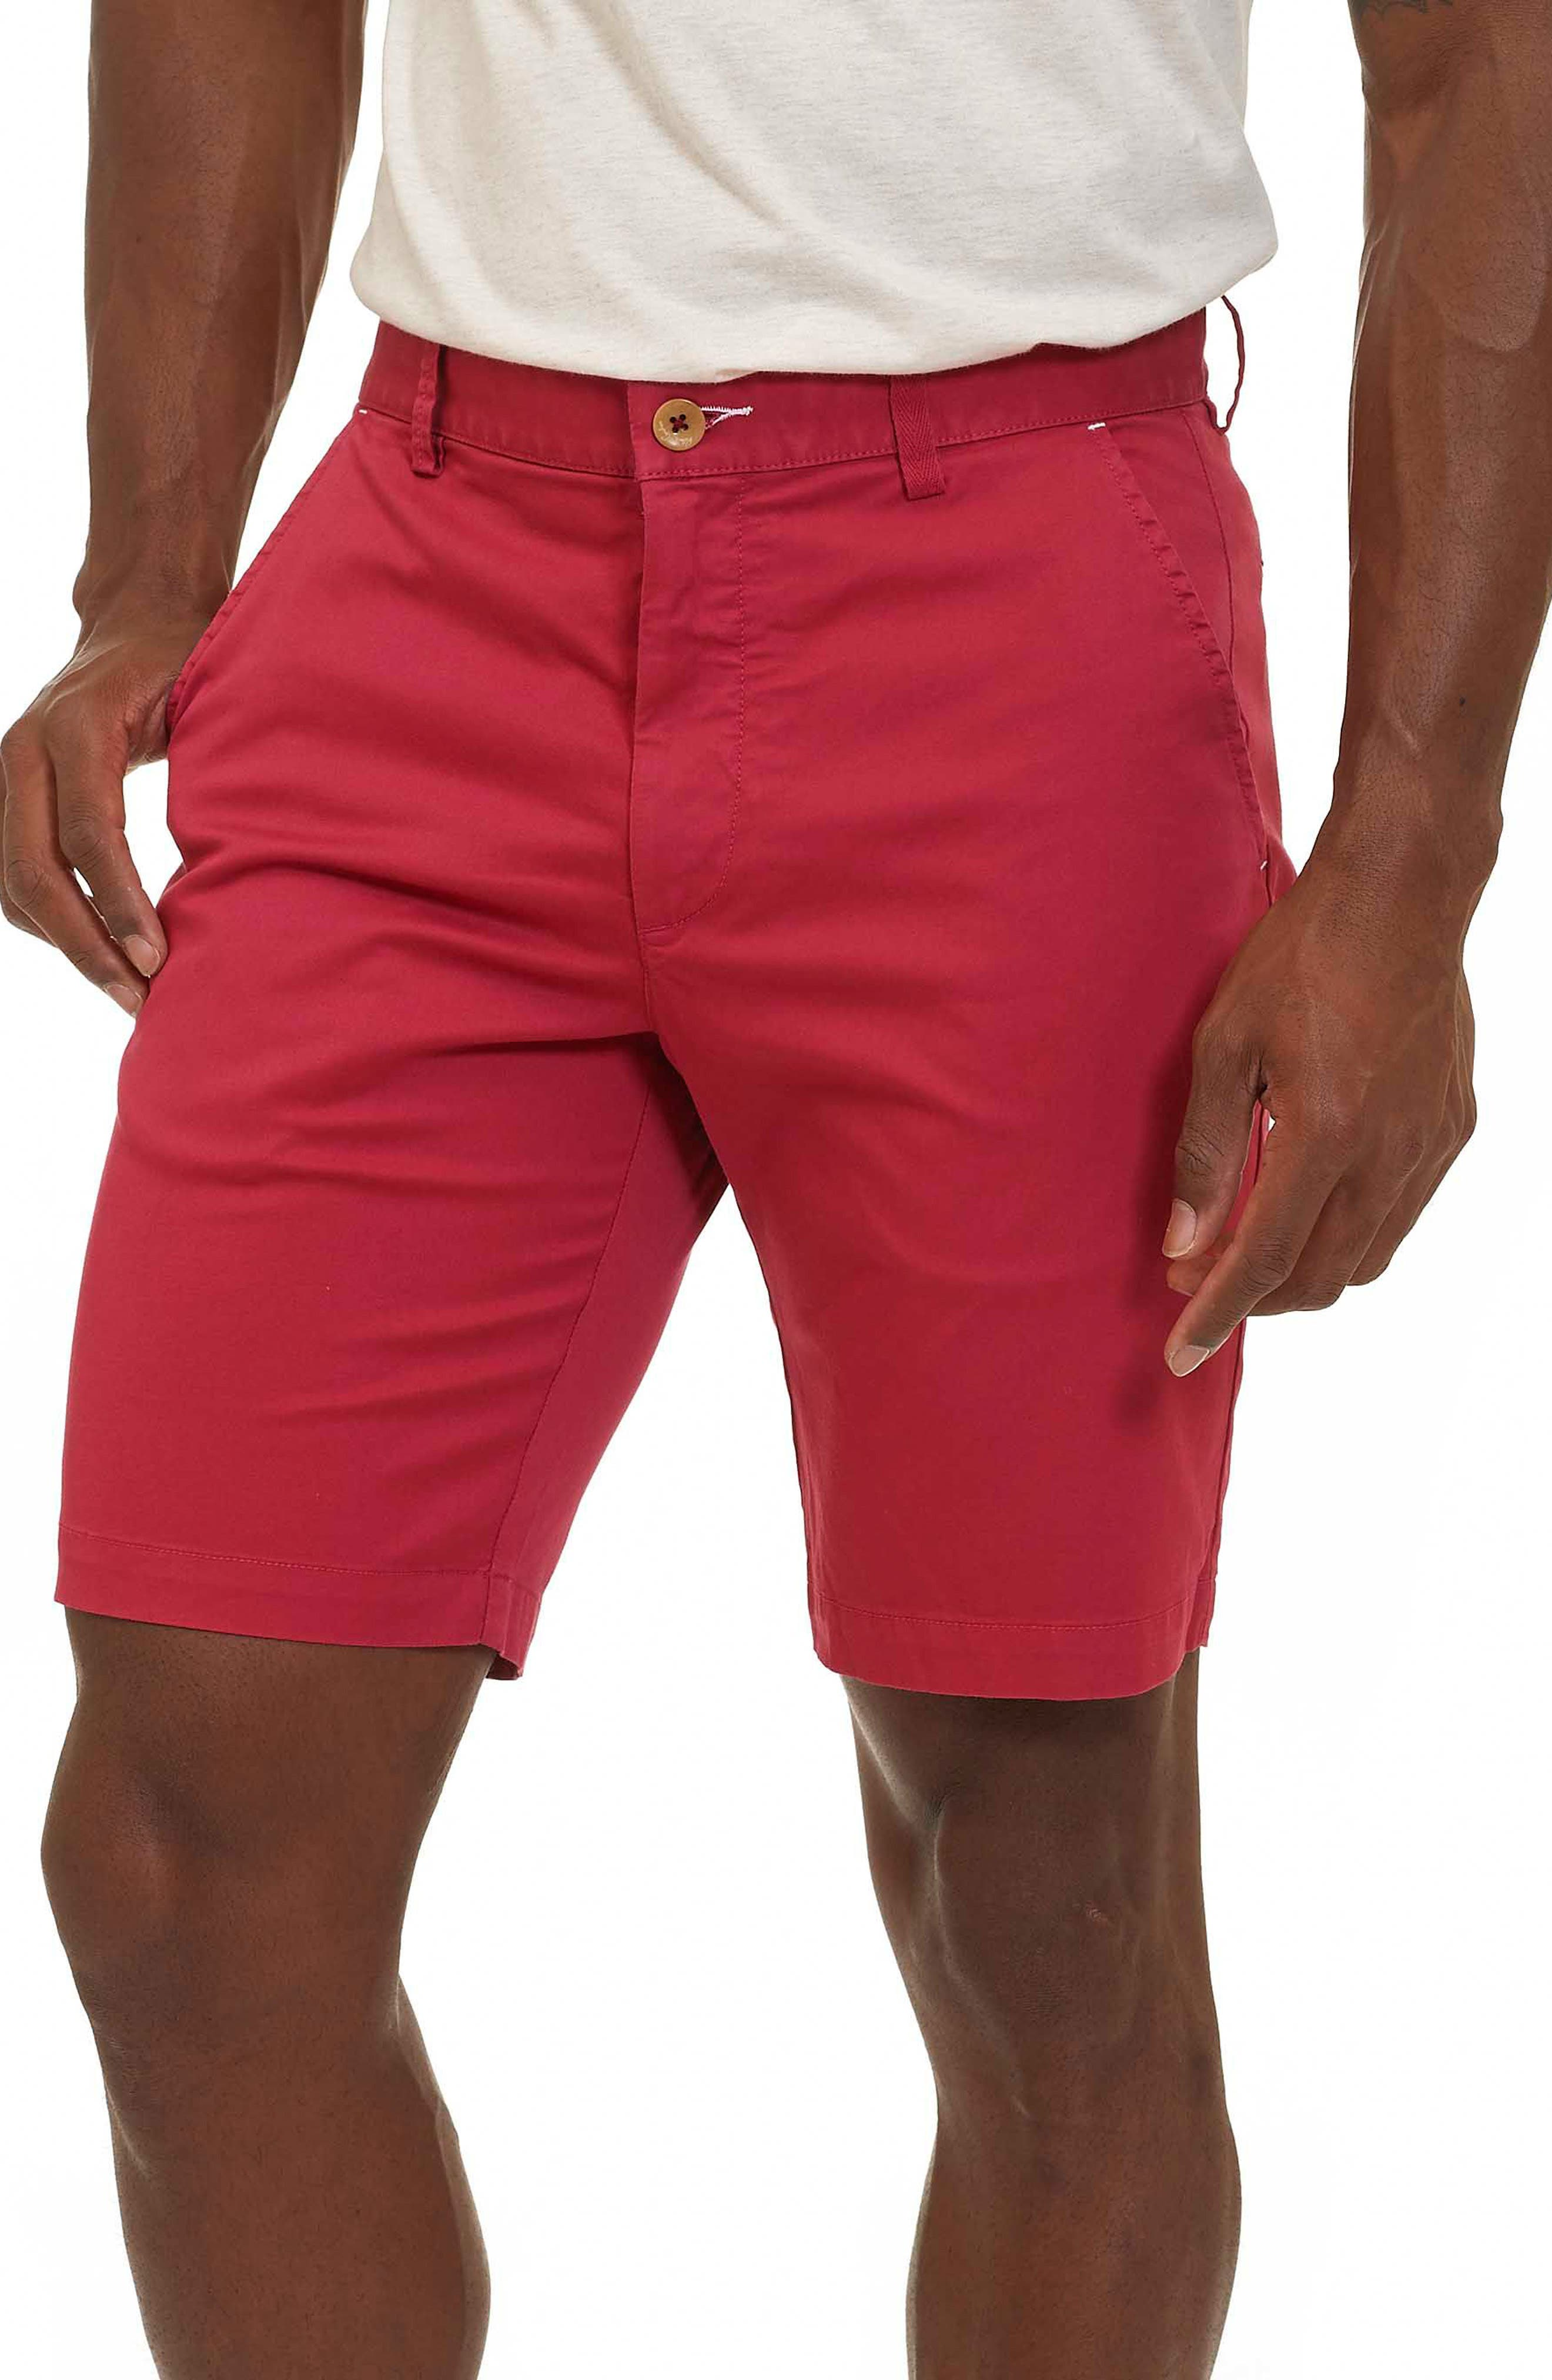 Pioneer Shorts,                         Main,                         color, Berry